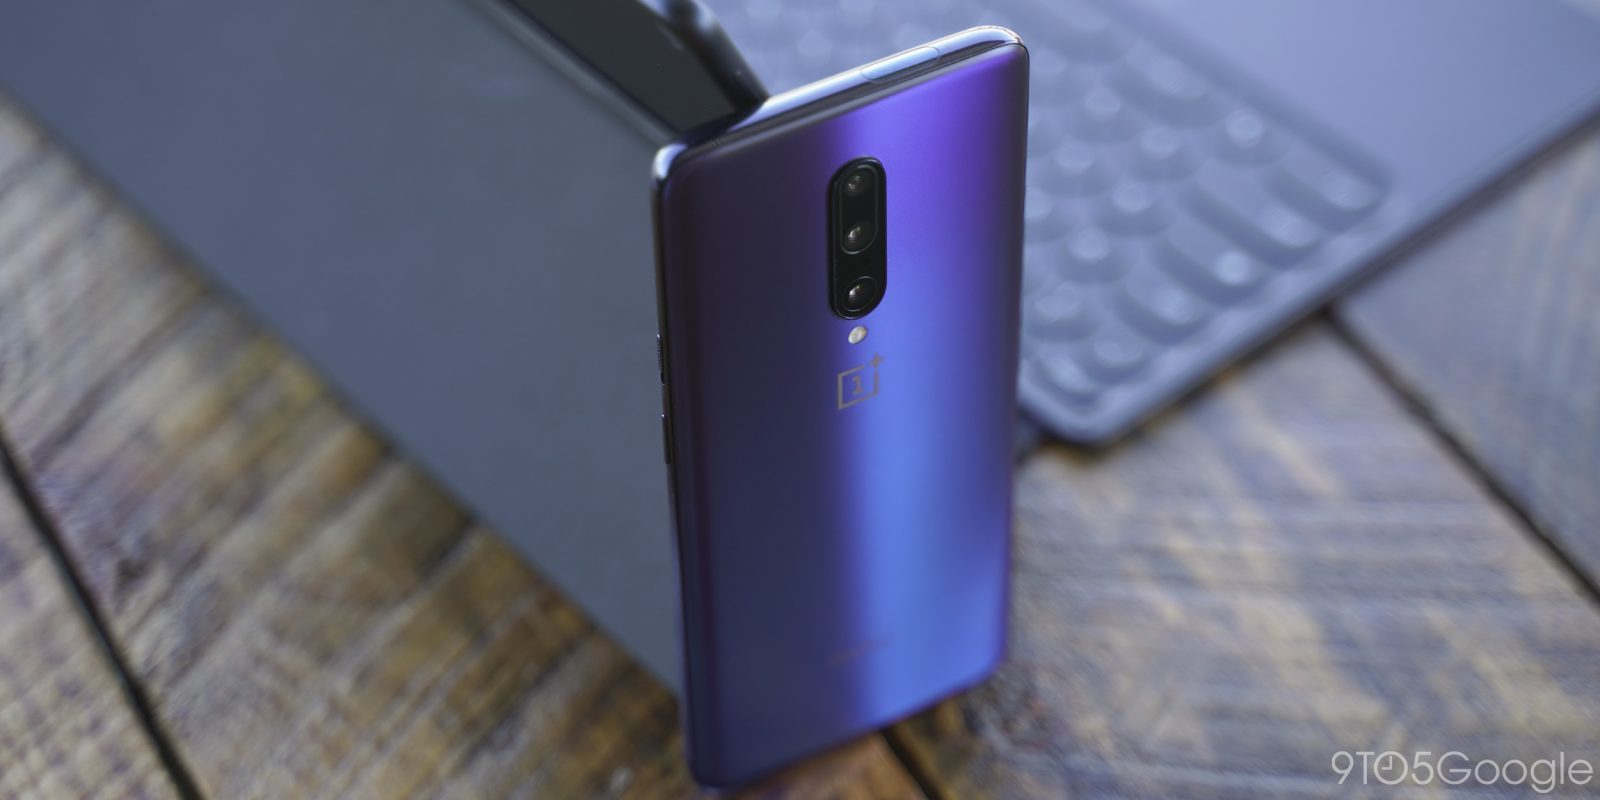 OnePlus 7, 7 Pro, and 7 Pro 5G now support ARCore - 9to5Google